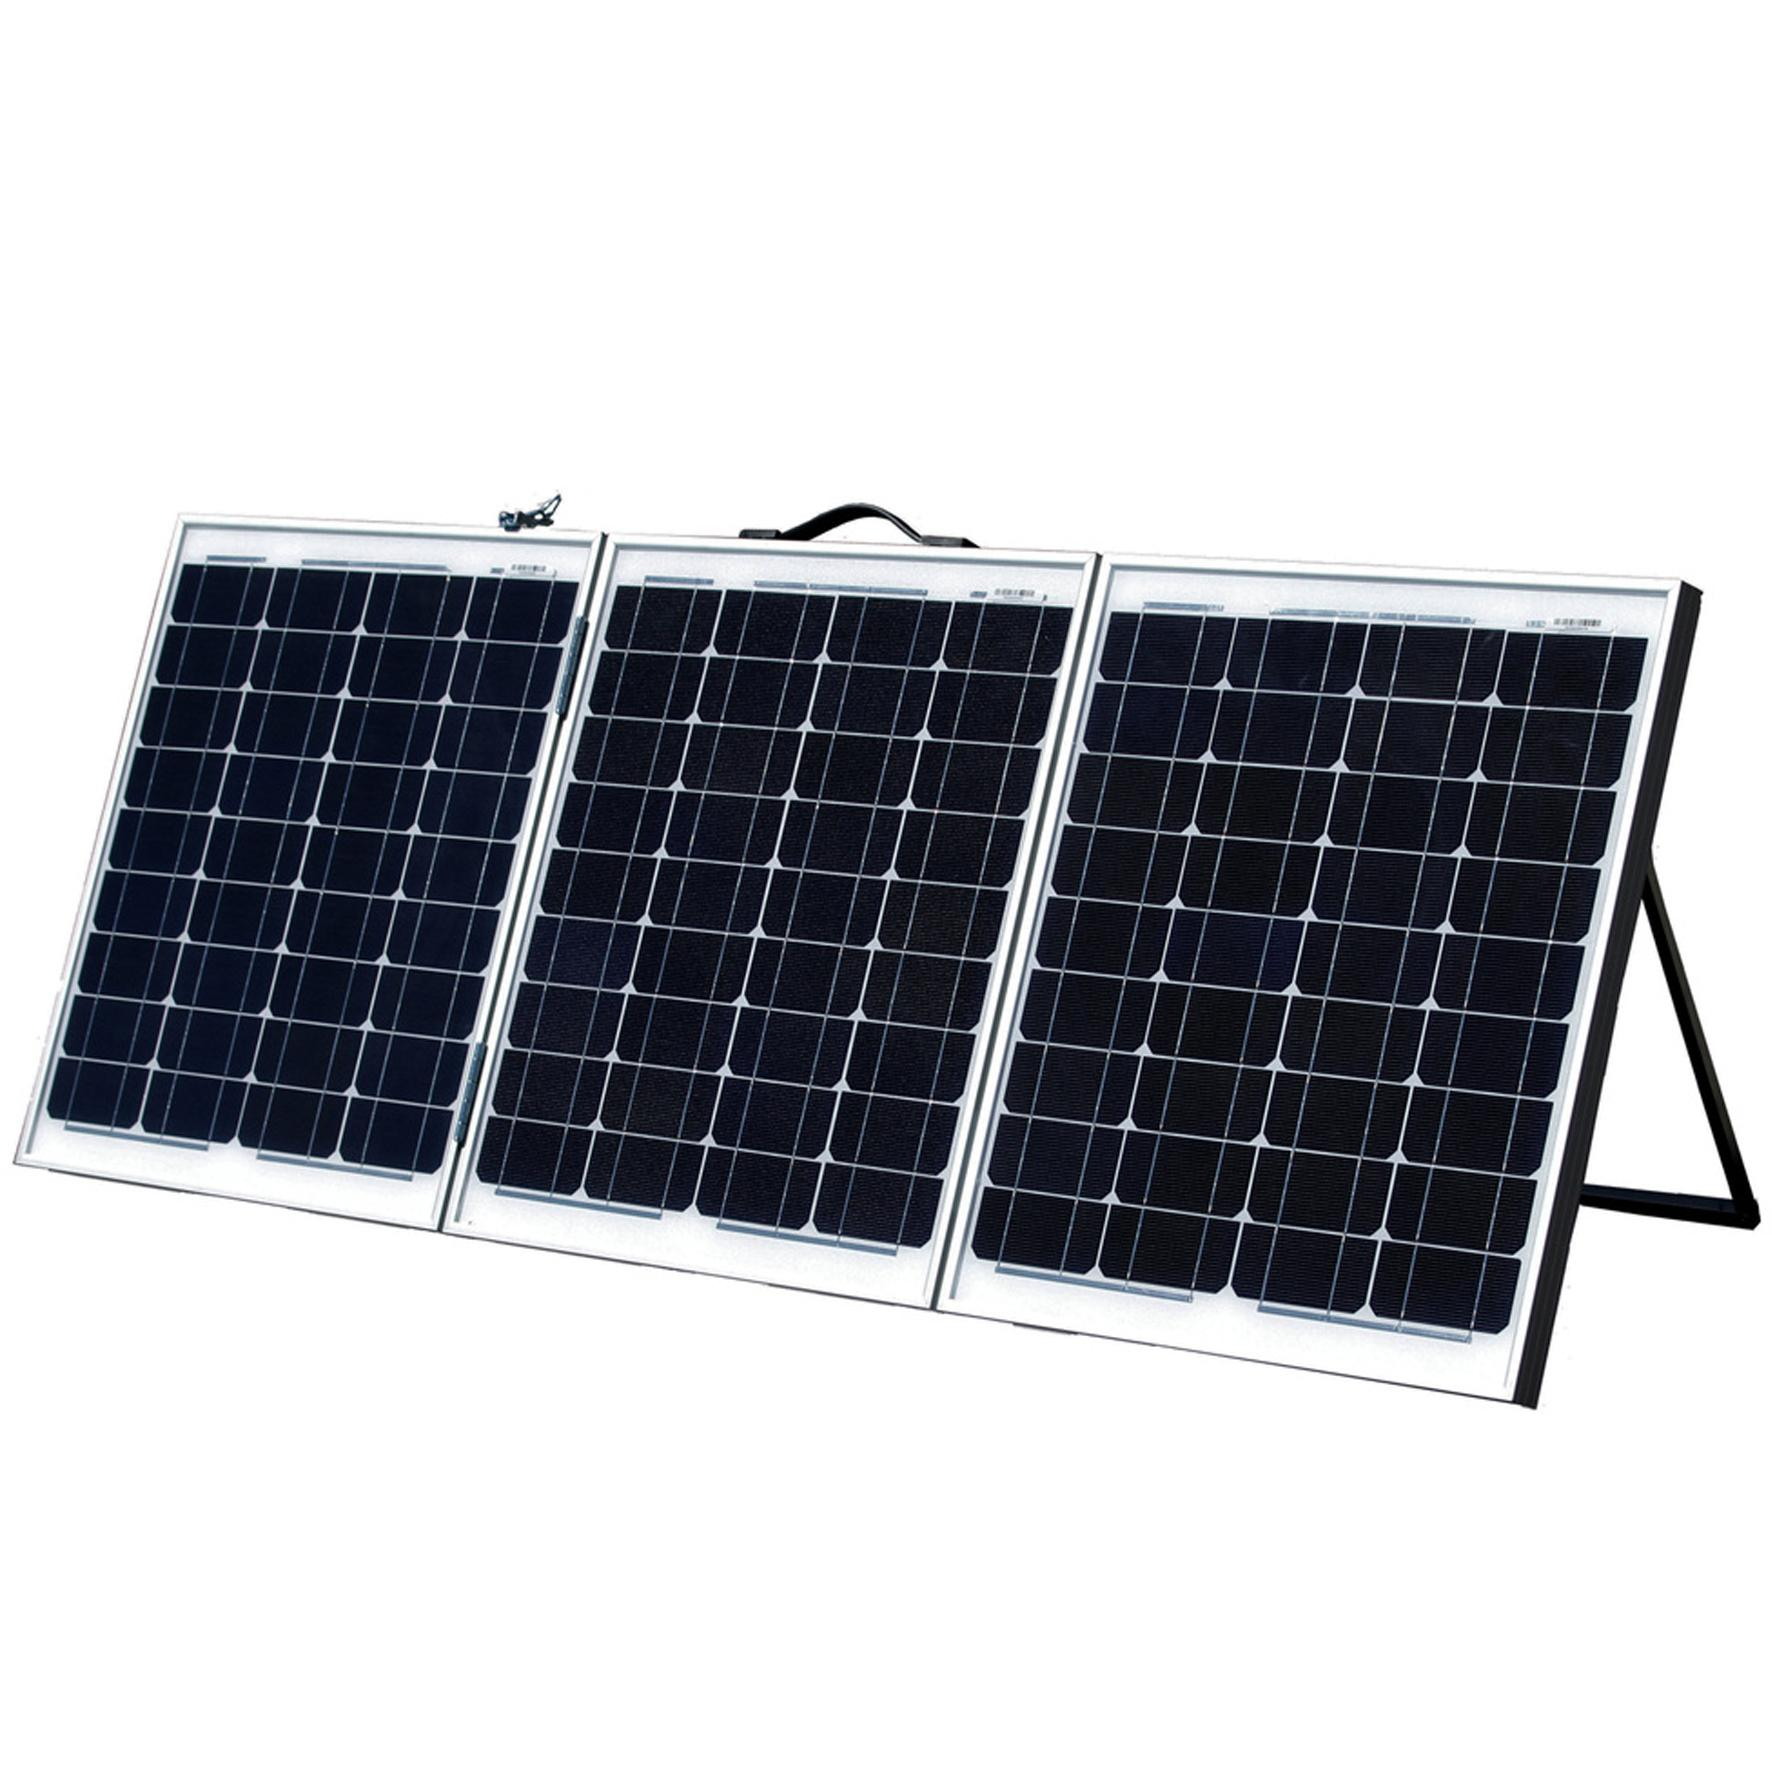 Blue Apple 165 Watt Portable Panel Home Of 12 Volt